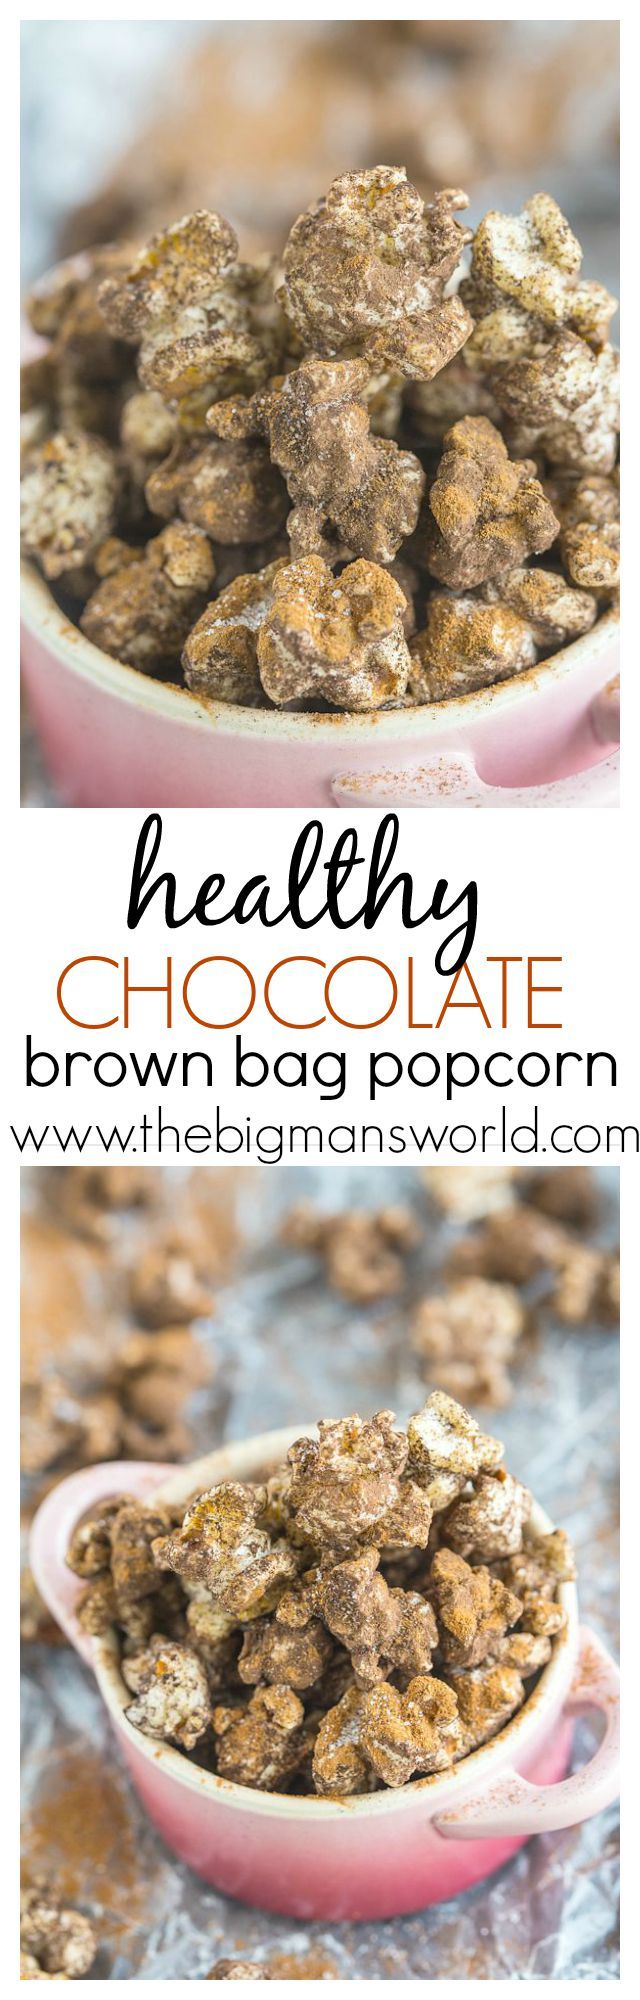 Best 25+ Chocolate brown ideas only on Pinterest | Chocolate brown ...